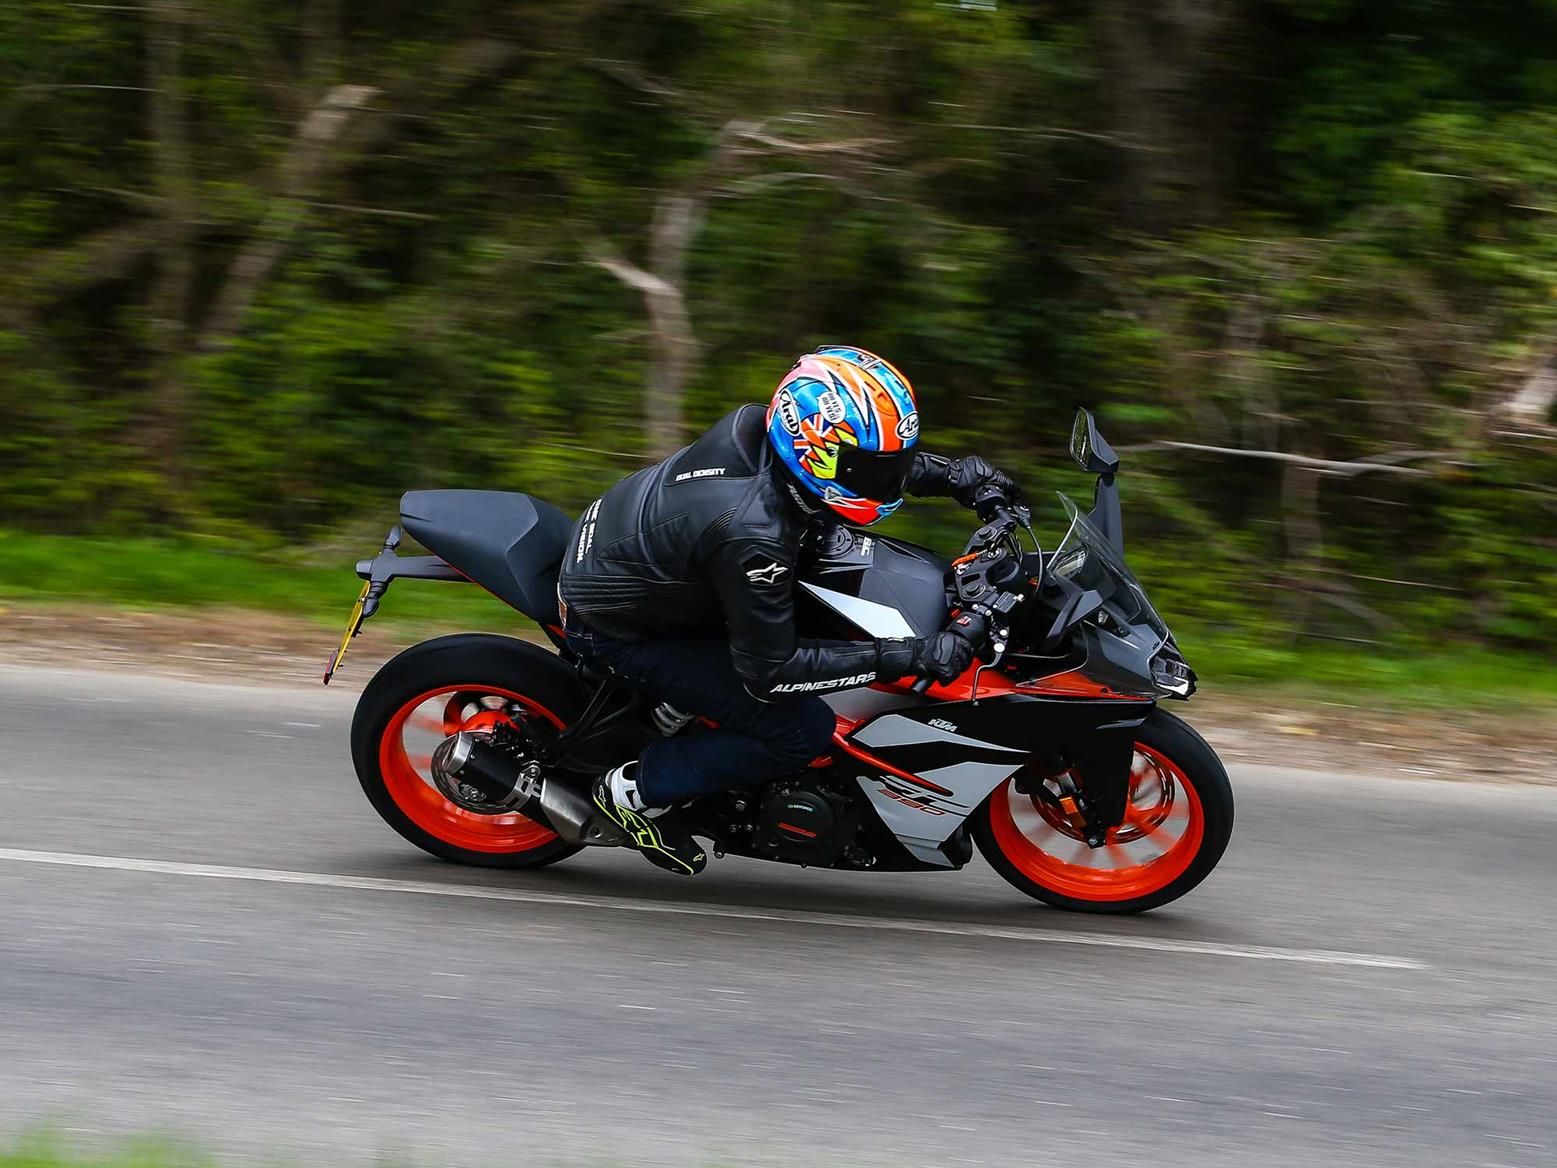 Riding the KTM RC390 on the road